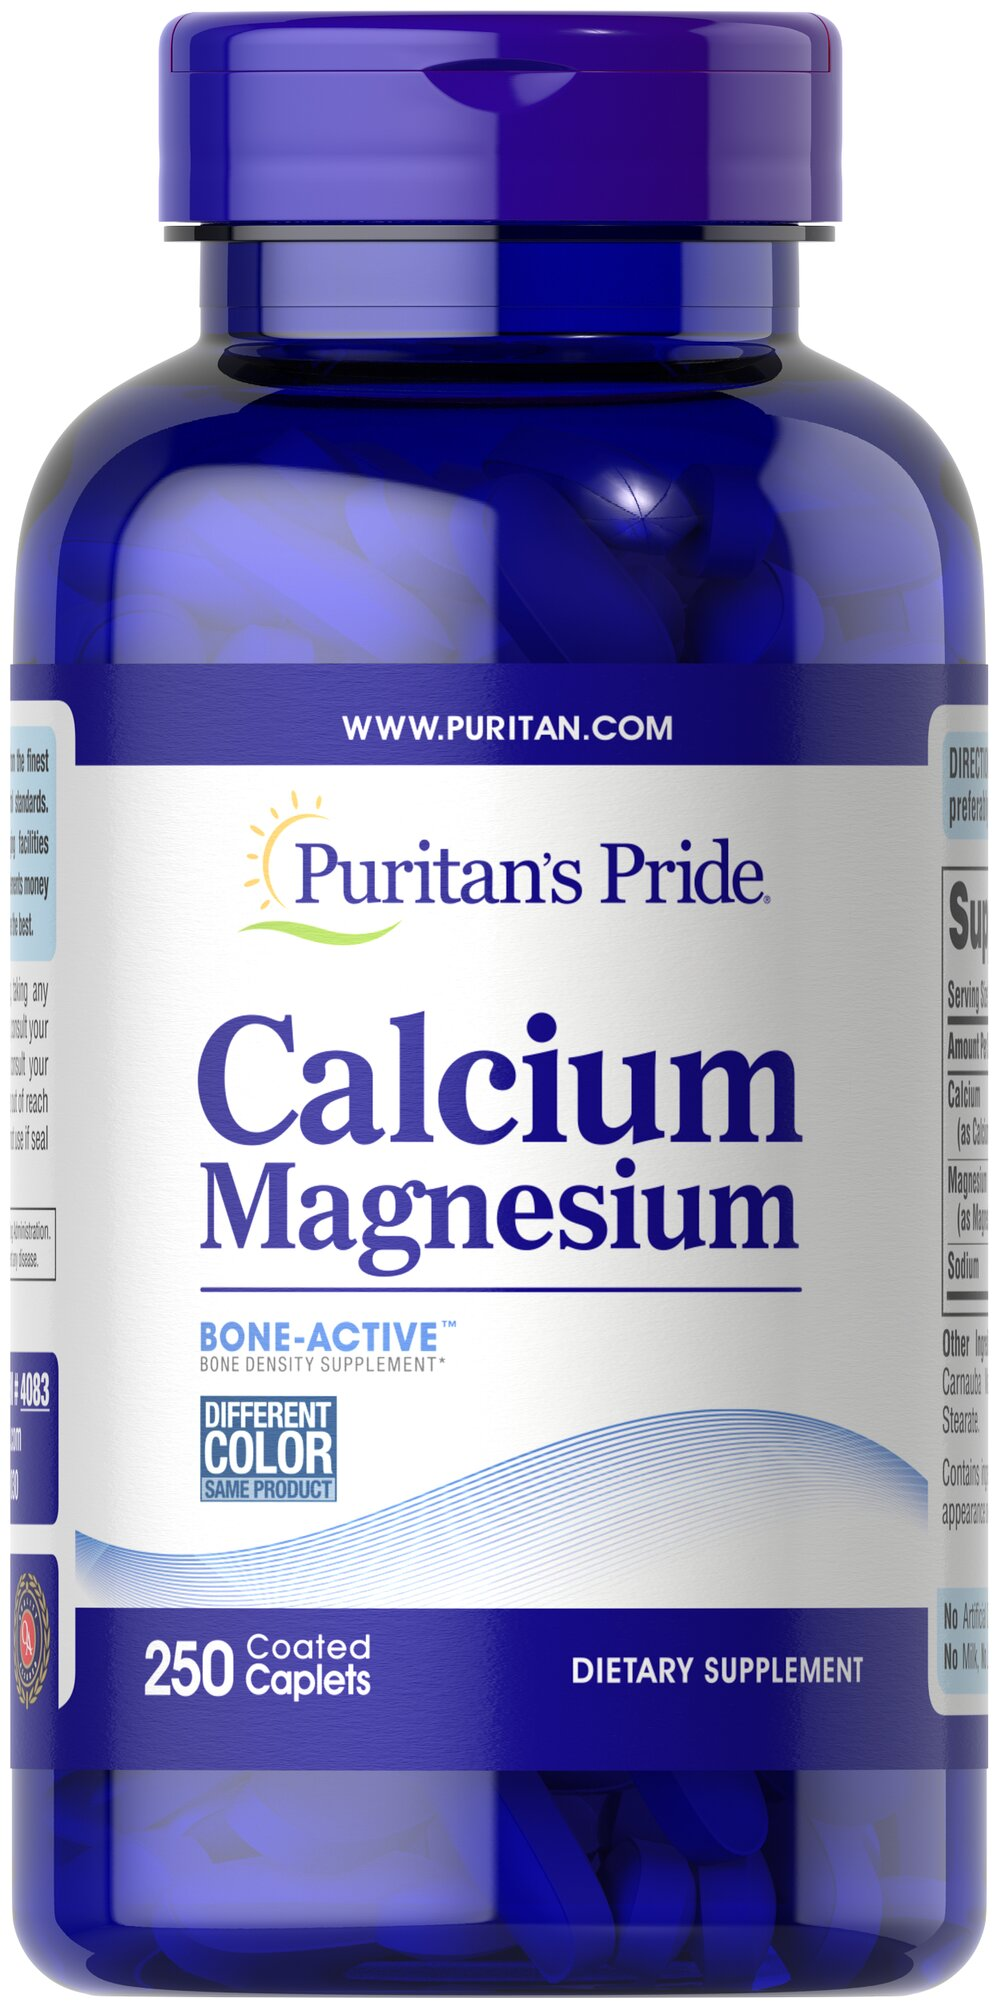 Calcium Magnesium Chelated <p>Looking for extra support for your bones?</p><p>Puritan's Pride offers a high quality Calcium and Magnesium supplement that delivers 500 mg Calcium and 250 mg Magnesium in a chelated form for optimal absorption.</p> 250 Caplets 500 mg/250 mg $17.99